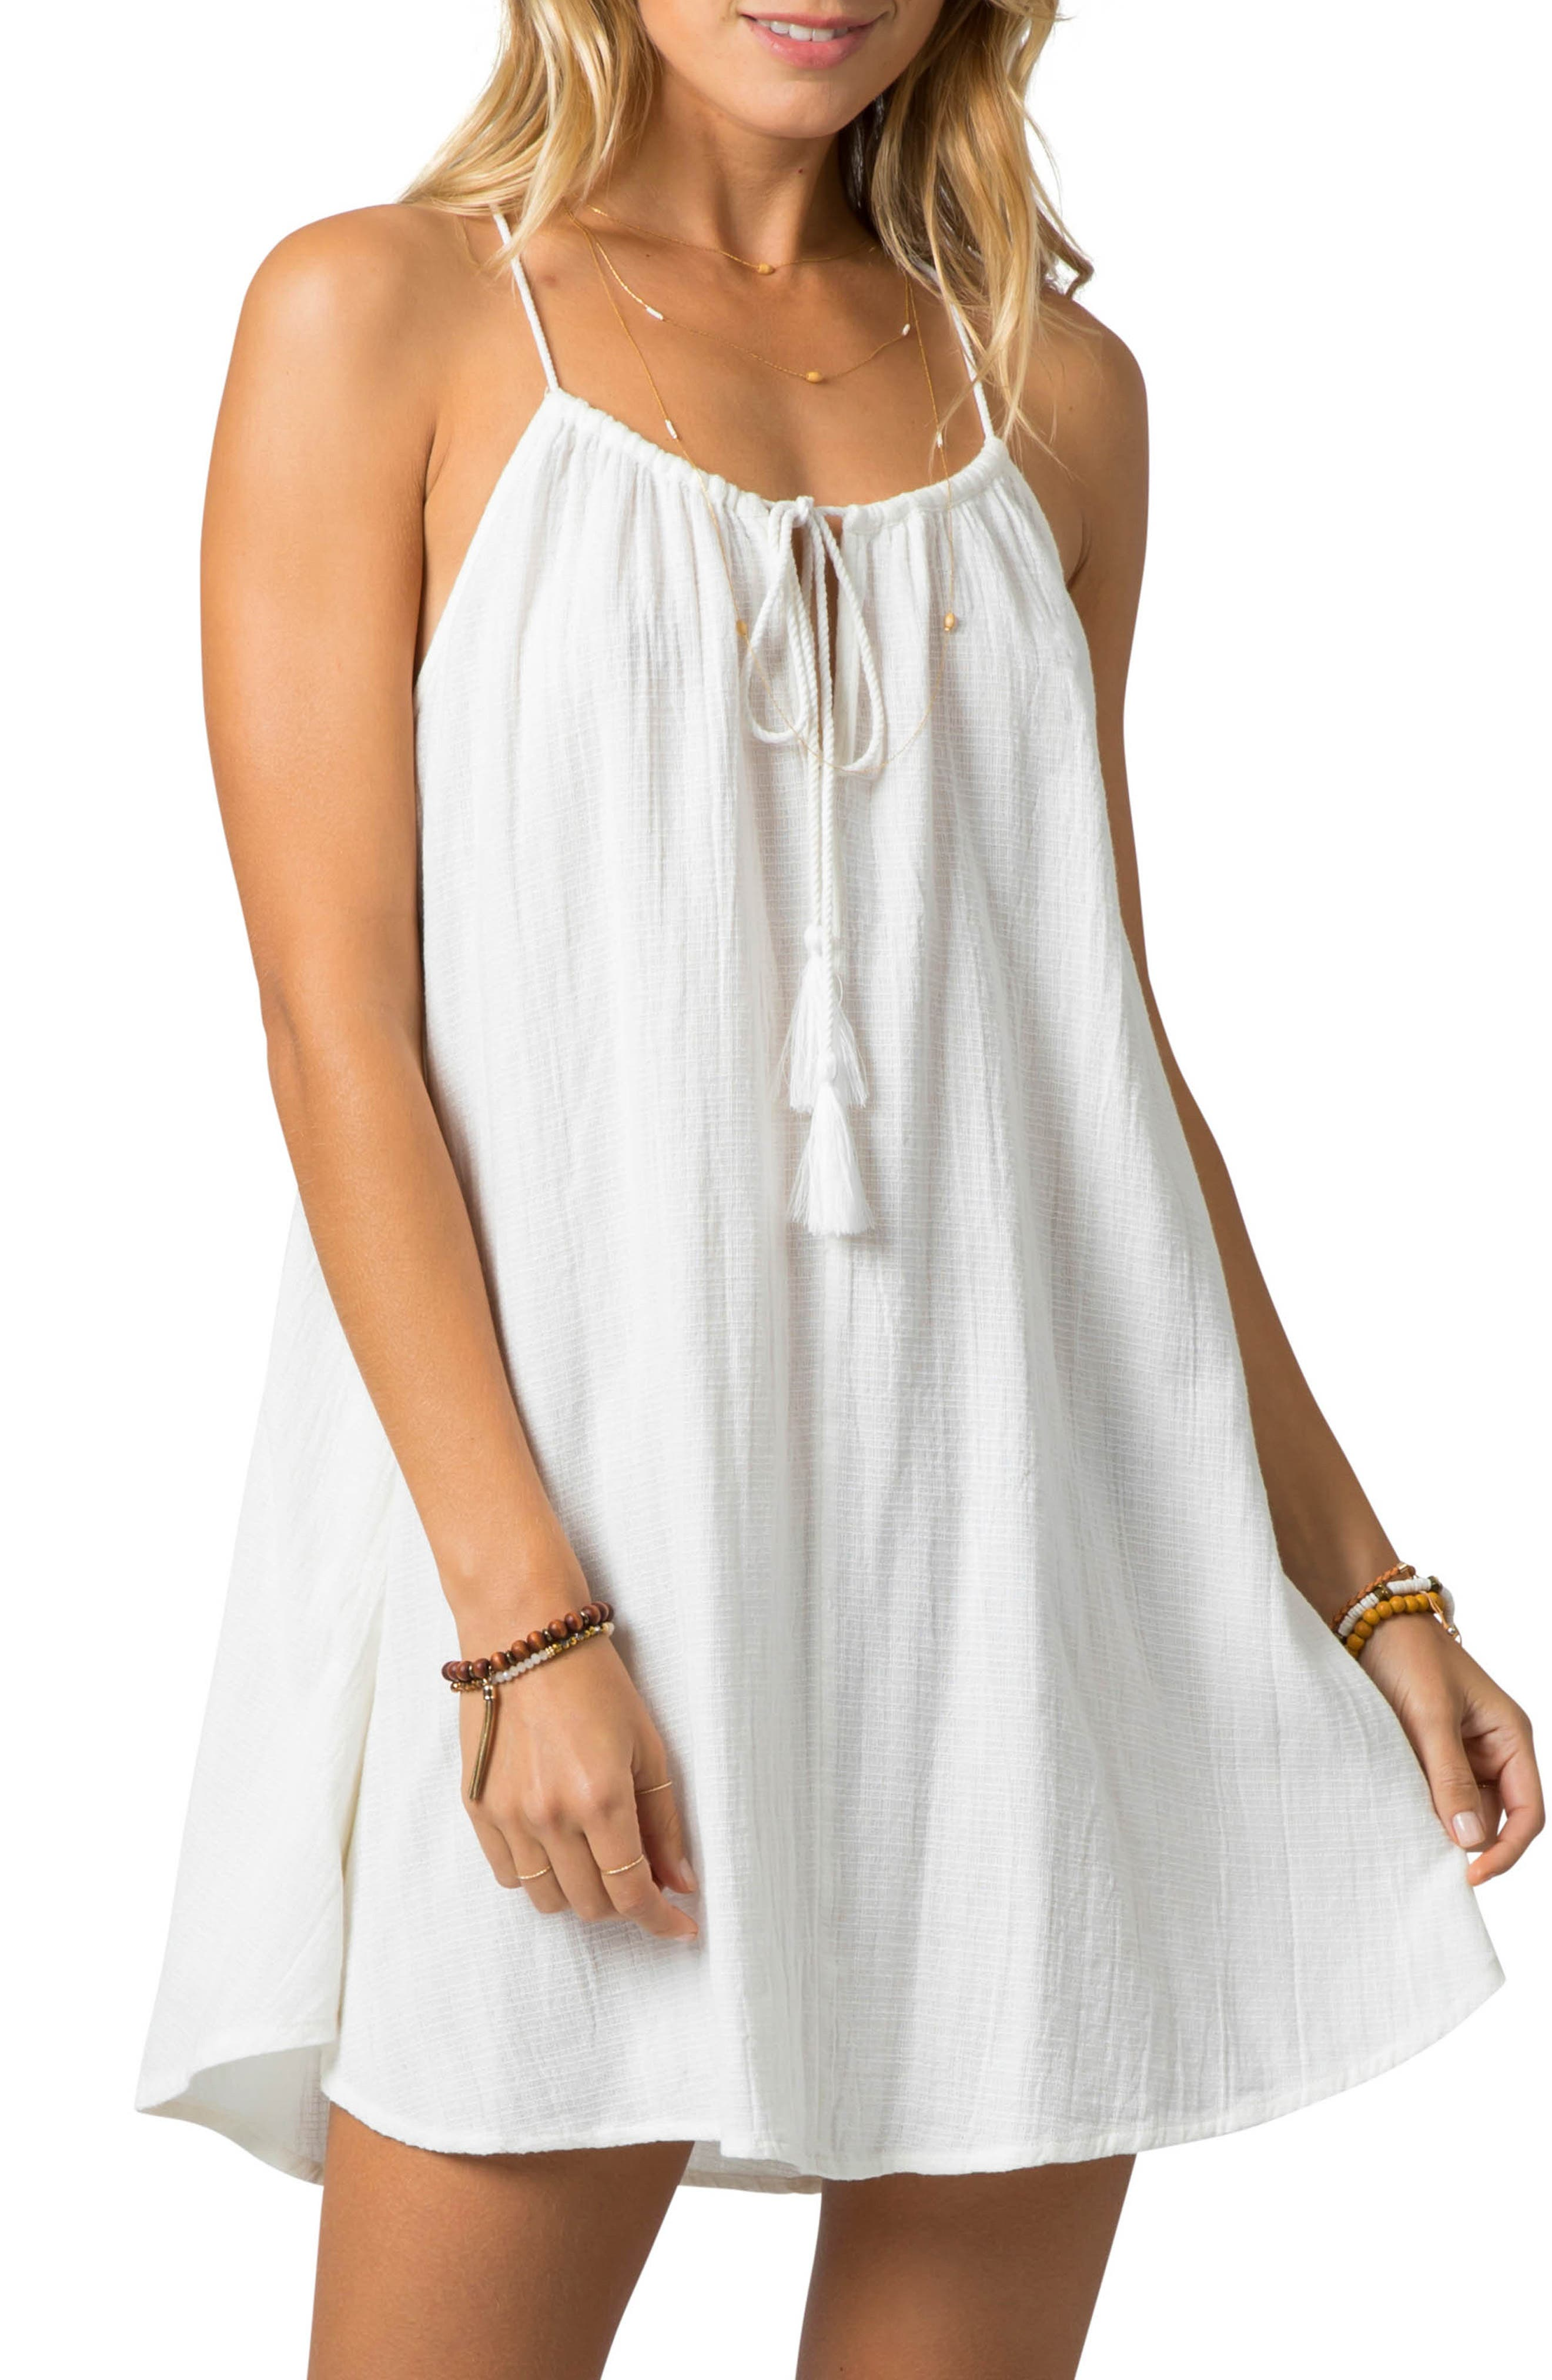 Rip Curl Classic Surf Cover-Up Minidress, Ivory